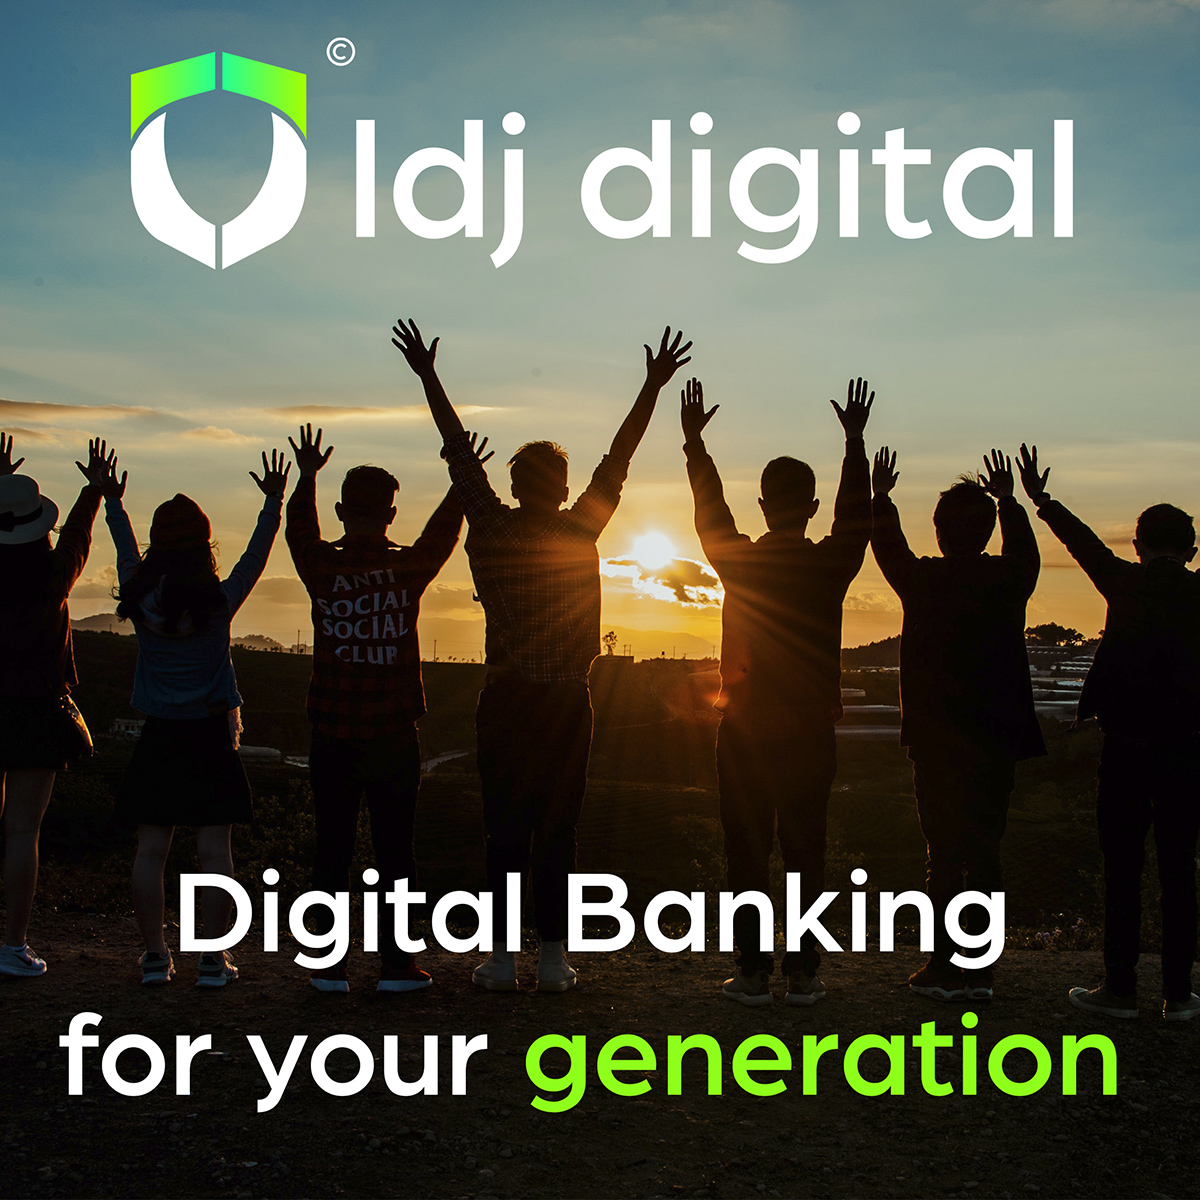 LDJ digital app, share internet data